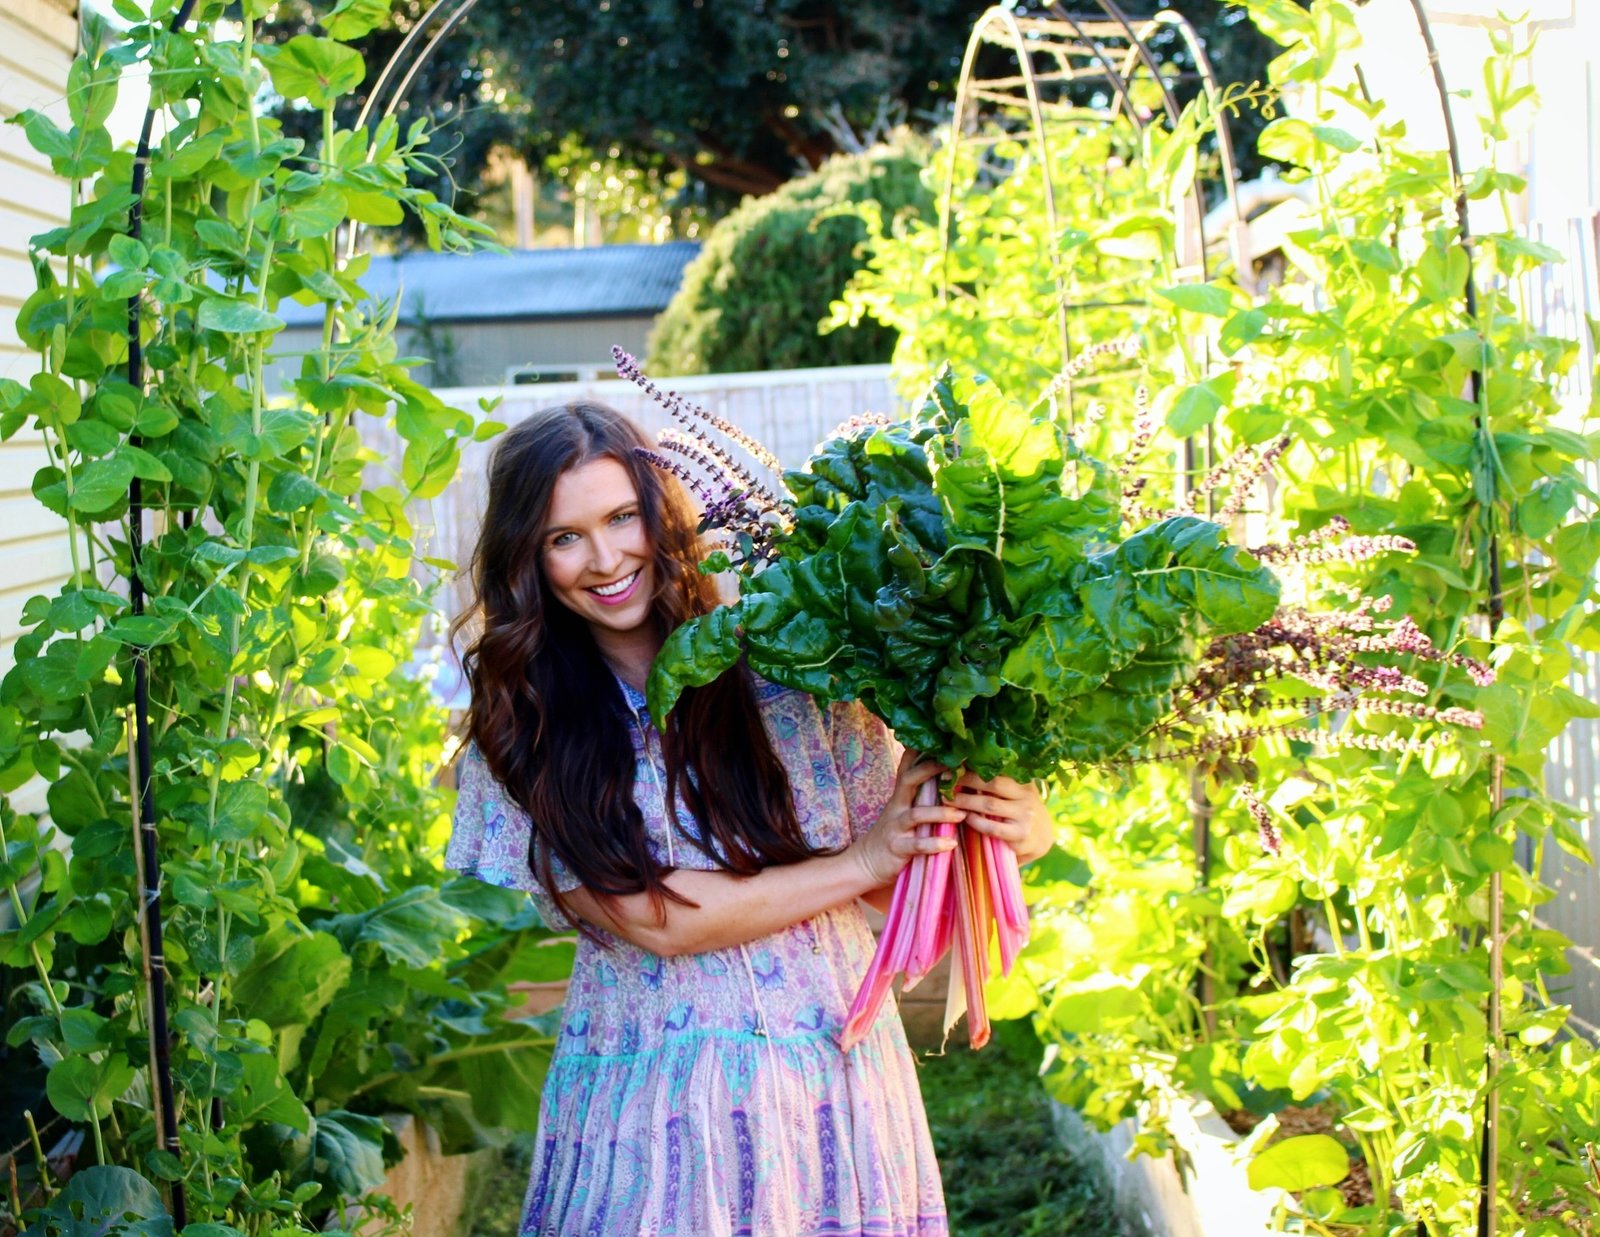 """""""There are some great advantages to growing your plants from seed,"""" says Lee Sullivan, who runs the Urban Veggie Patch Instagram account from her home in Australia. """"There is greater diversity in terms of what you can grow, and you have control over how the seedlings are raised, which is especially important if you are committed to organic growing."""""""